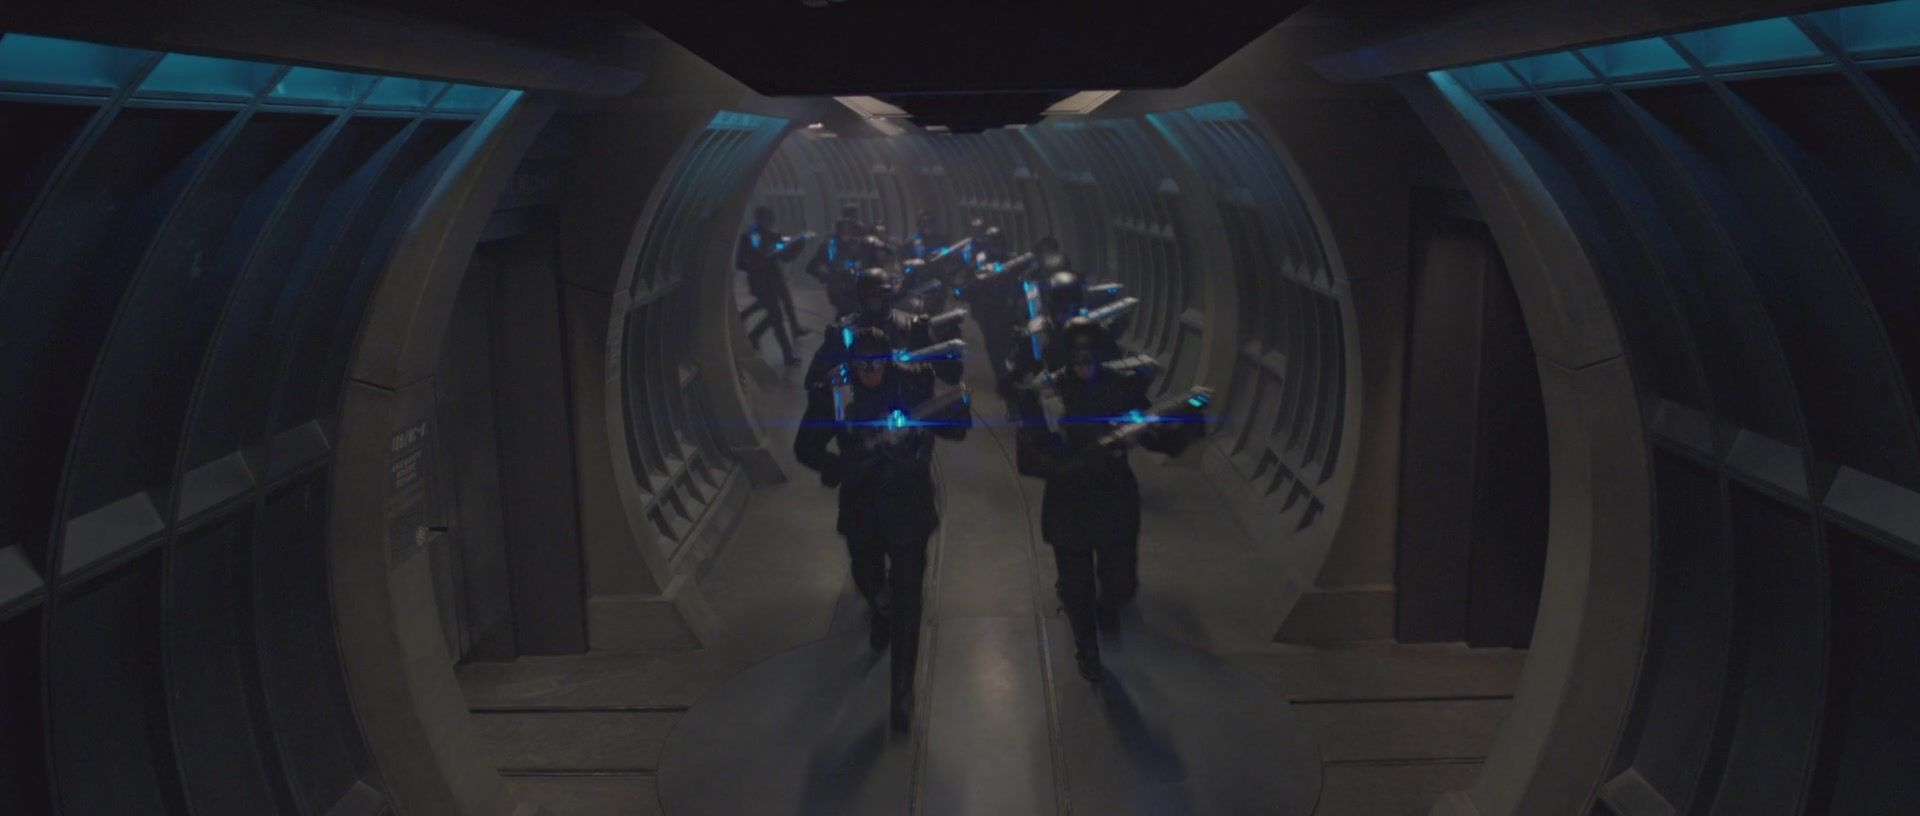 http://img2.wikia.nocookie.net/__cb20131111015154/disney/images/d/d7/Hydra_troopers.png